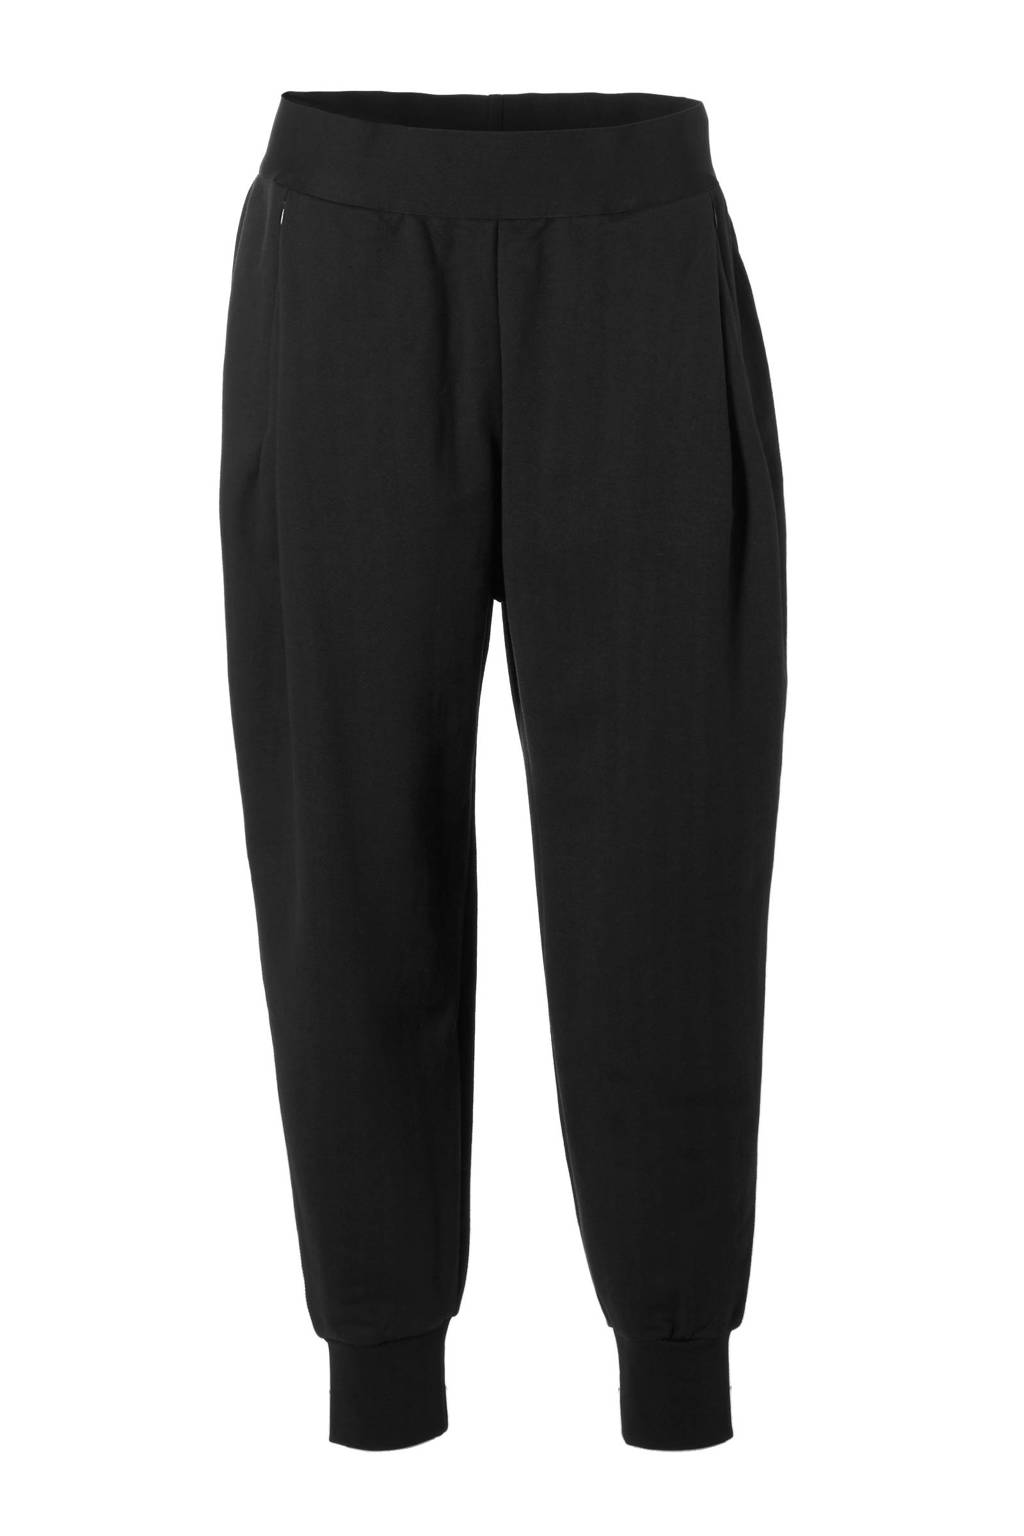 Joggingbroek Baggy Heren.Adidas Performance Baggy Joggingbroek Wehkamp